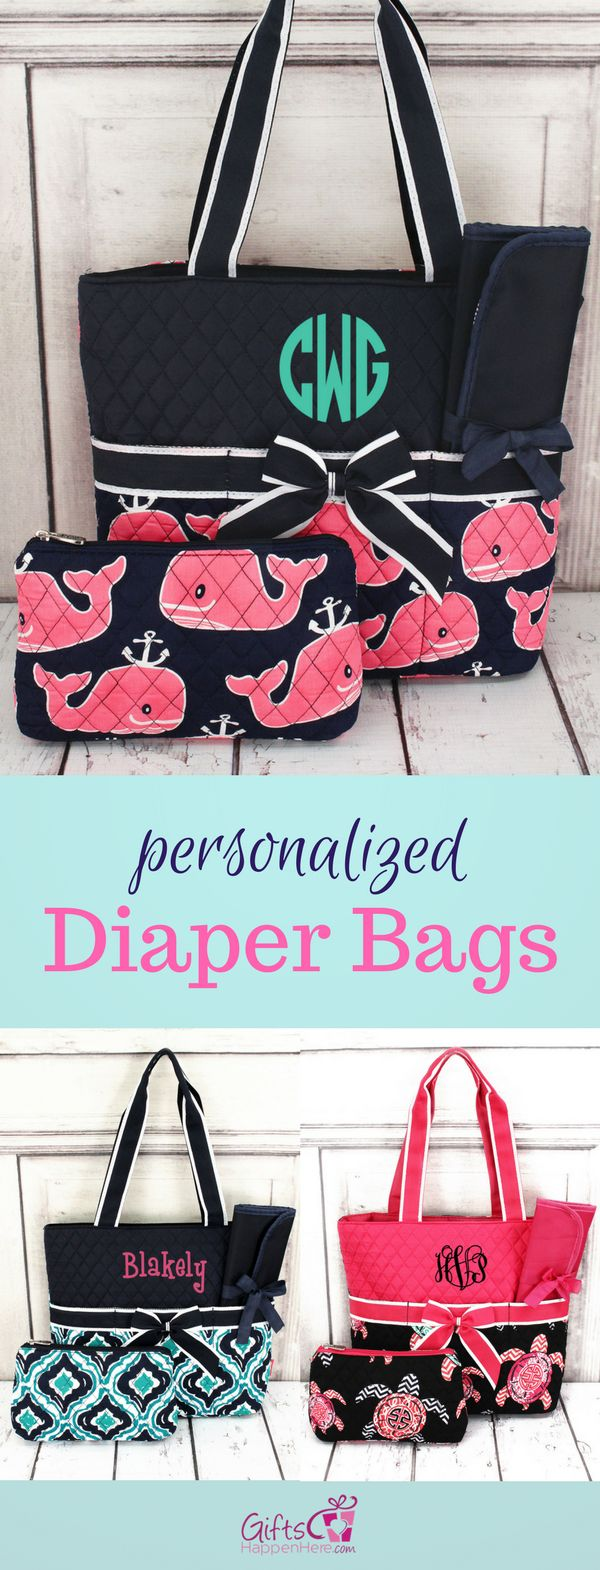 Beautifully monogrammed diaper bags including embroidery. Patterns: ikat, whale, turtle, paisley, anchor  / Personalized Diaper Bags / Diaper Bags / Best Diaper Bags